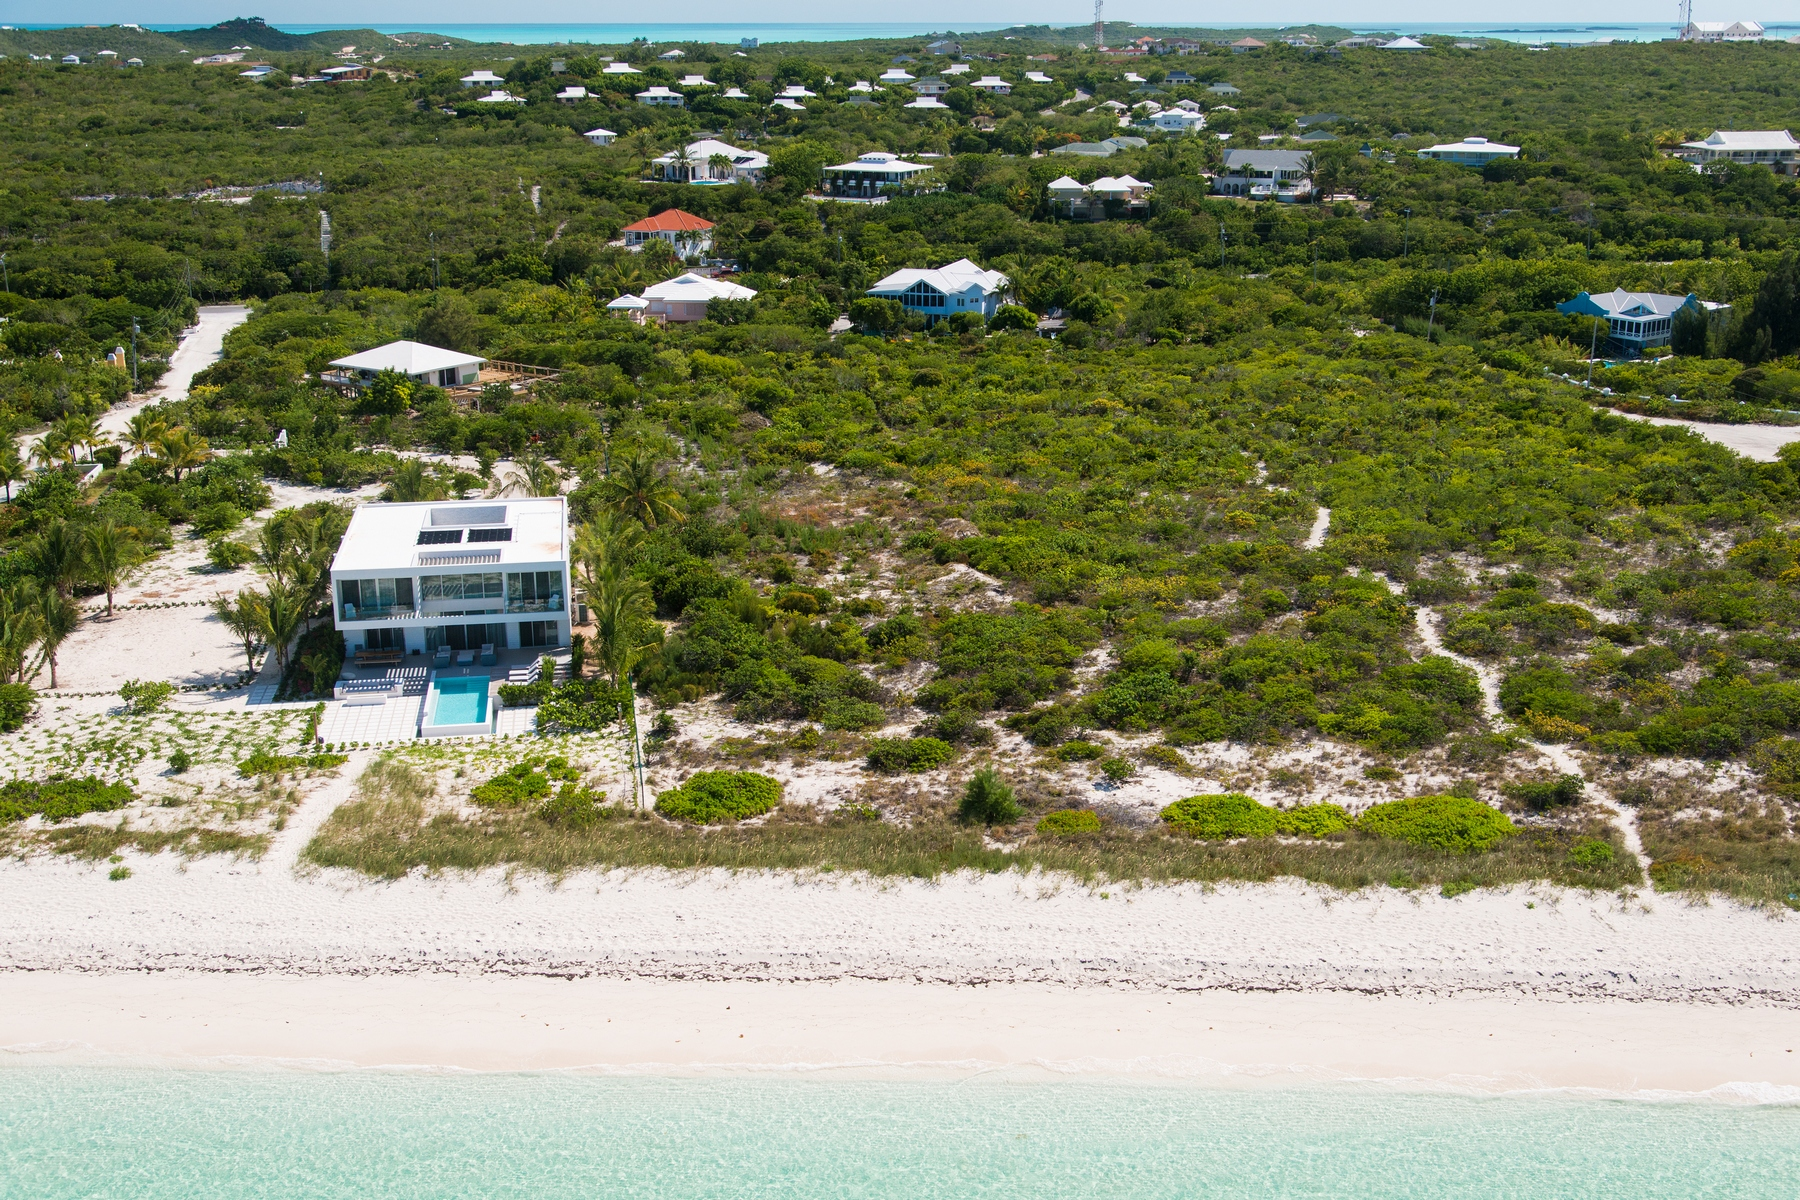 Land for Sale at Turtle Cove Turtle Cove, Providenciales TCI BWI Turks And Caicos Islands